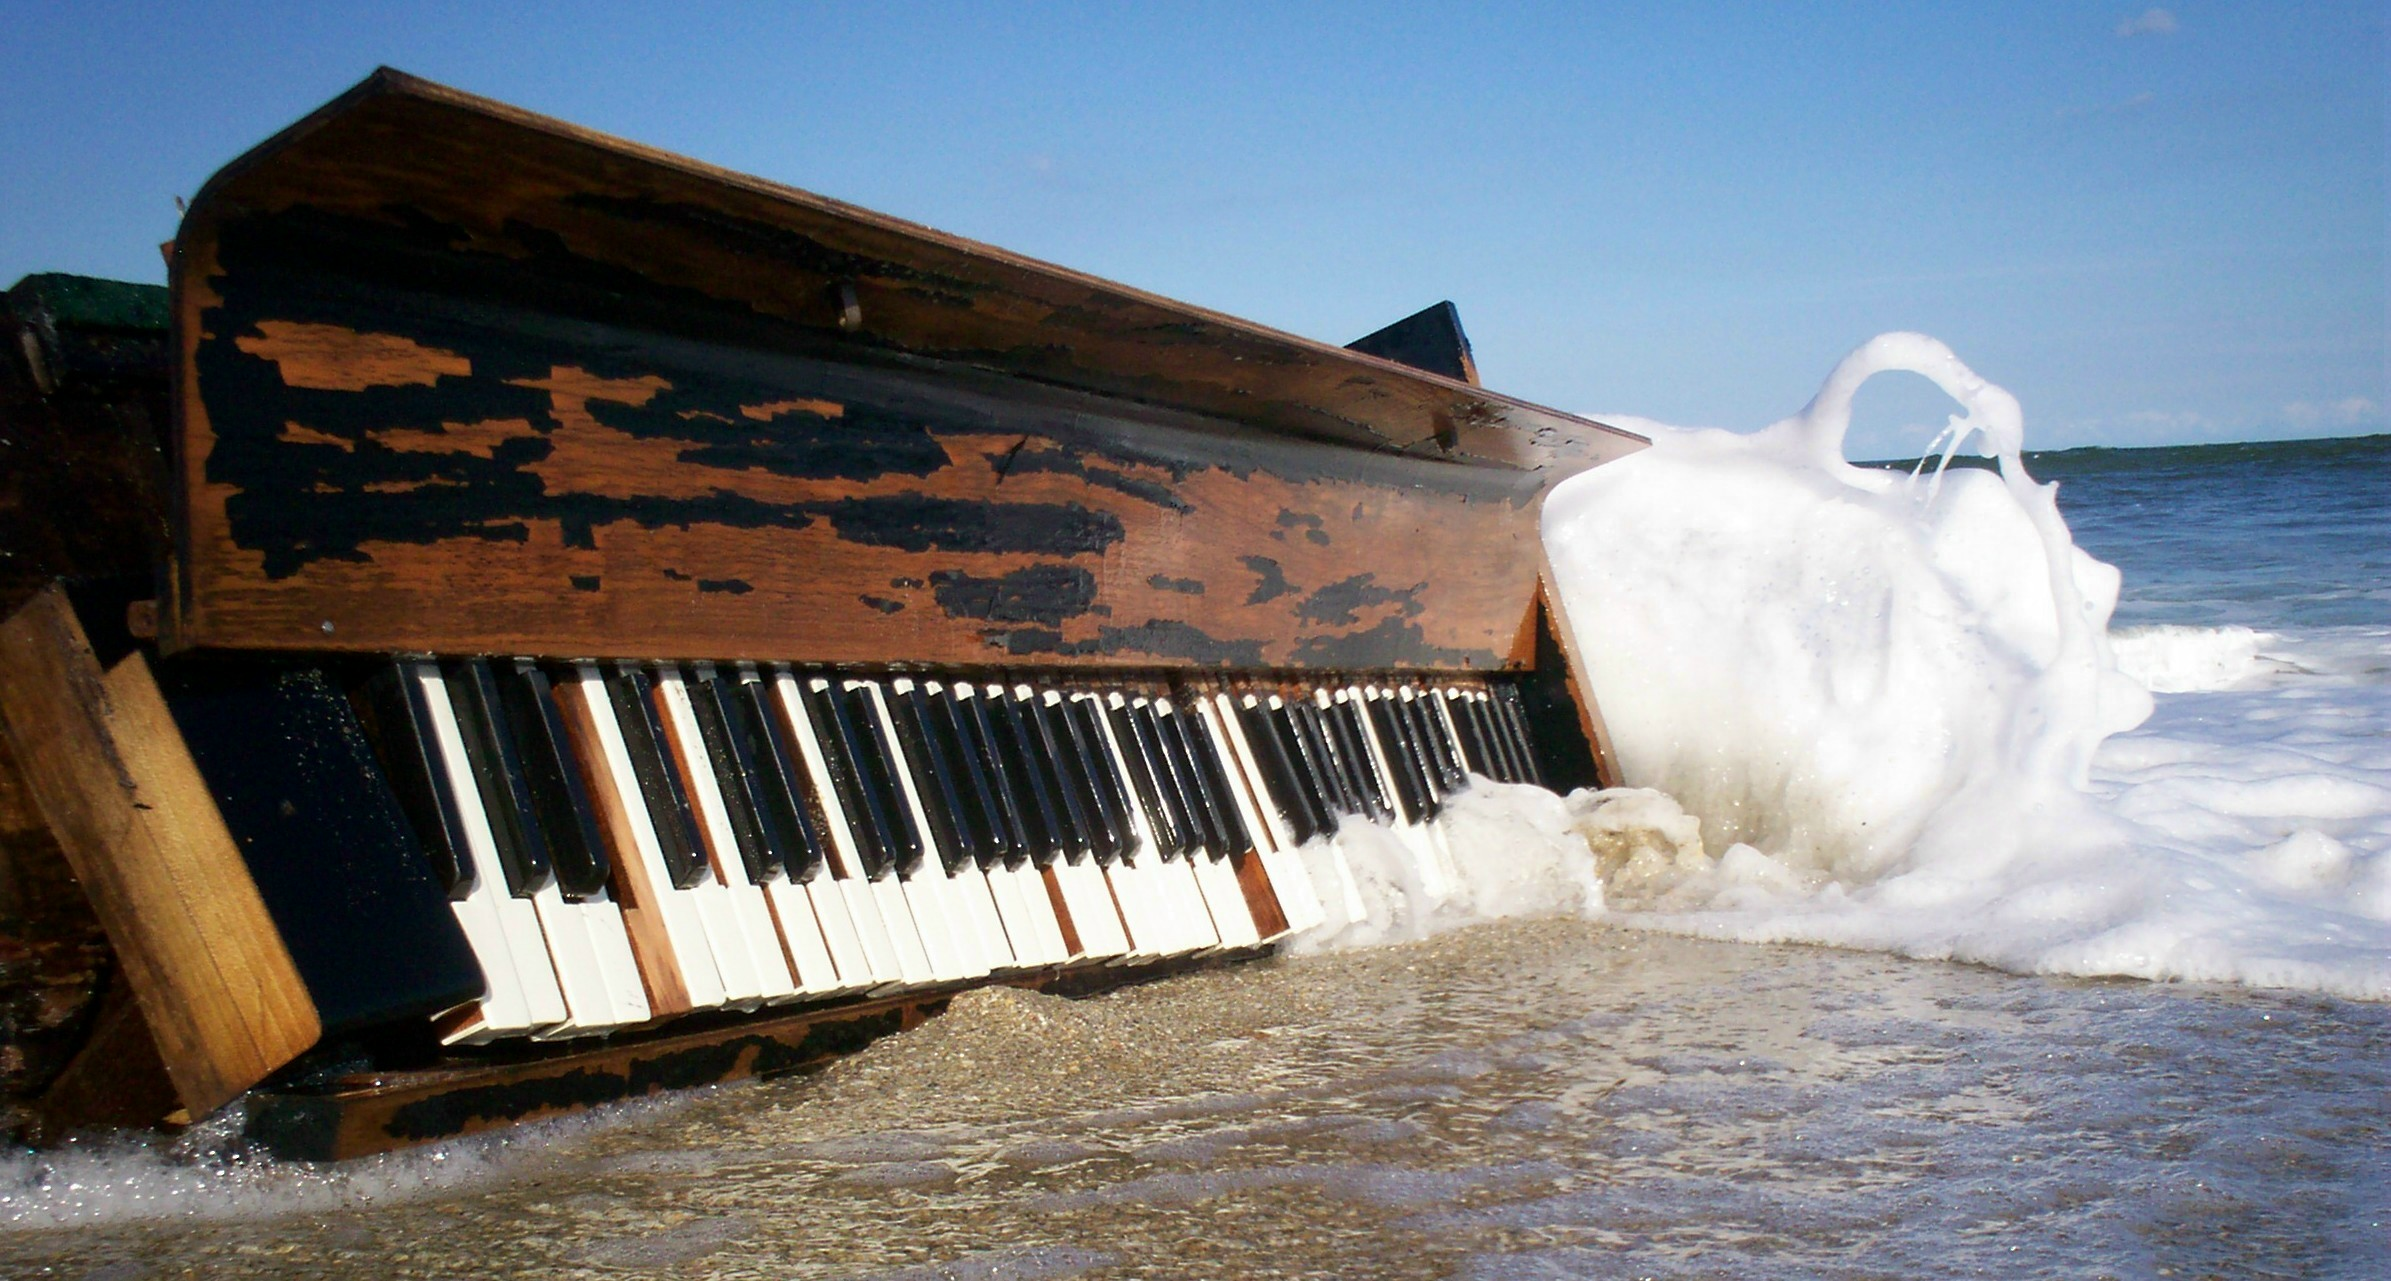 What Happens When Your Piano Gets Wet?